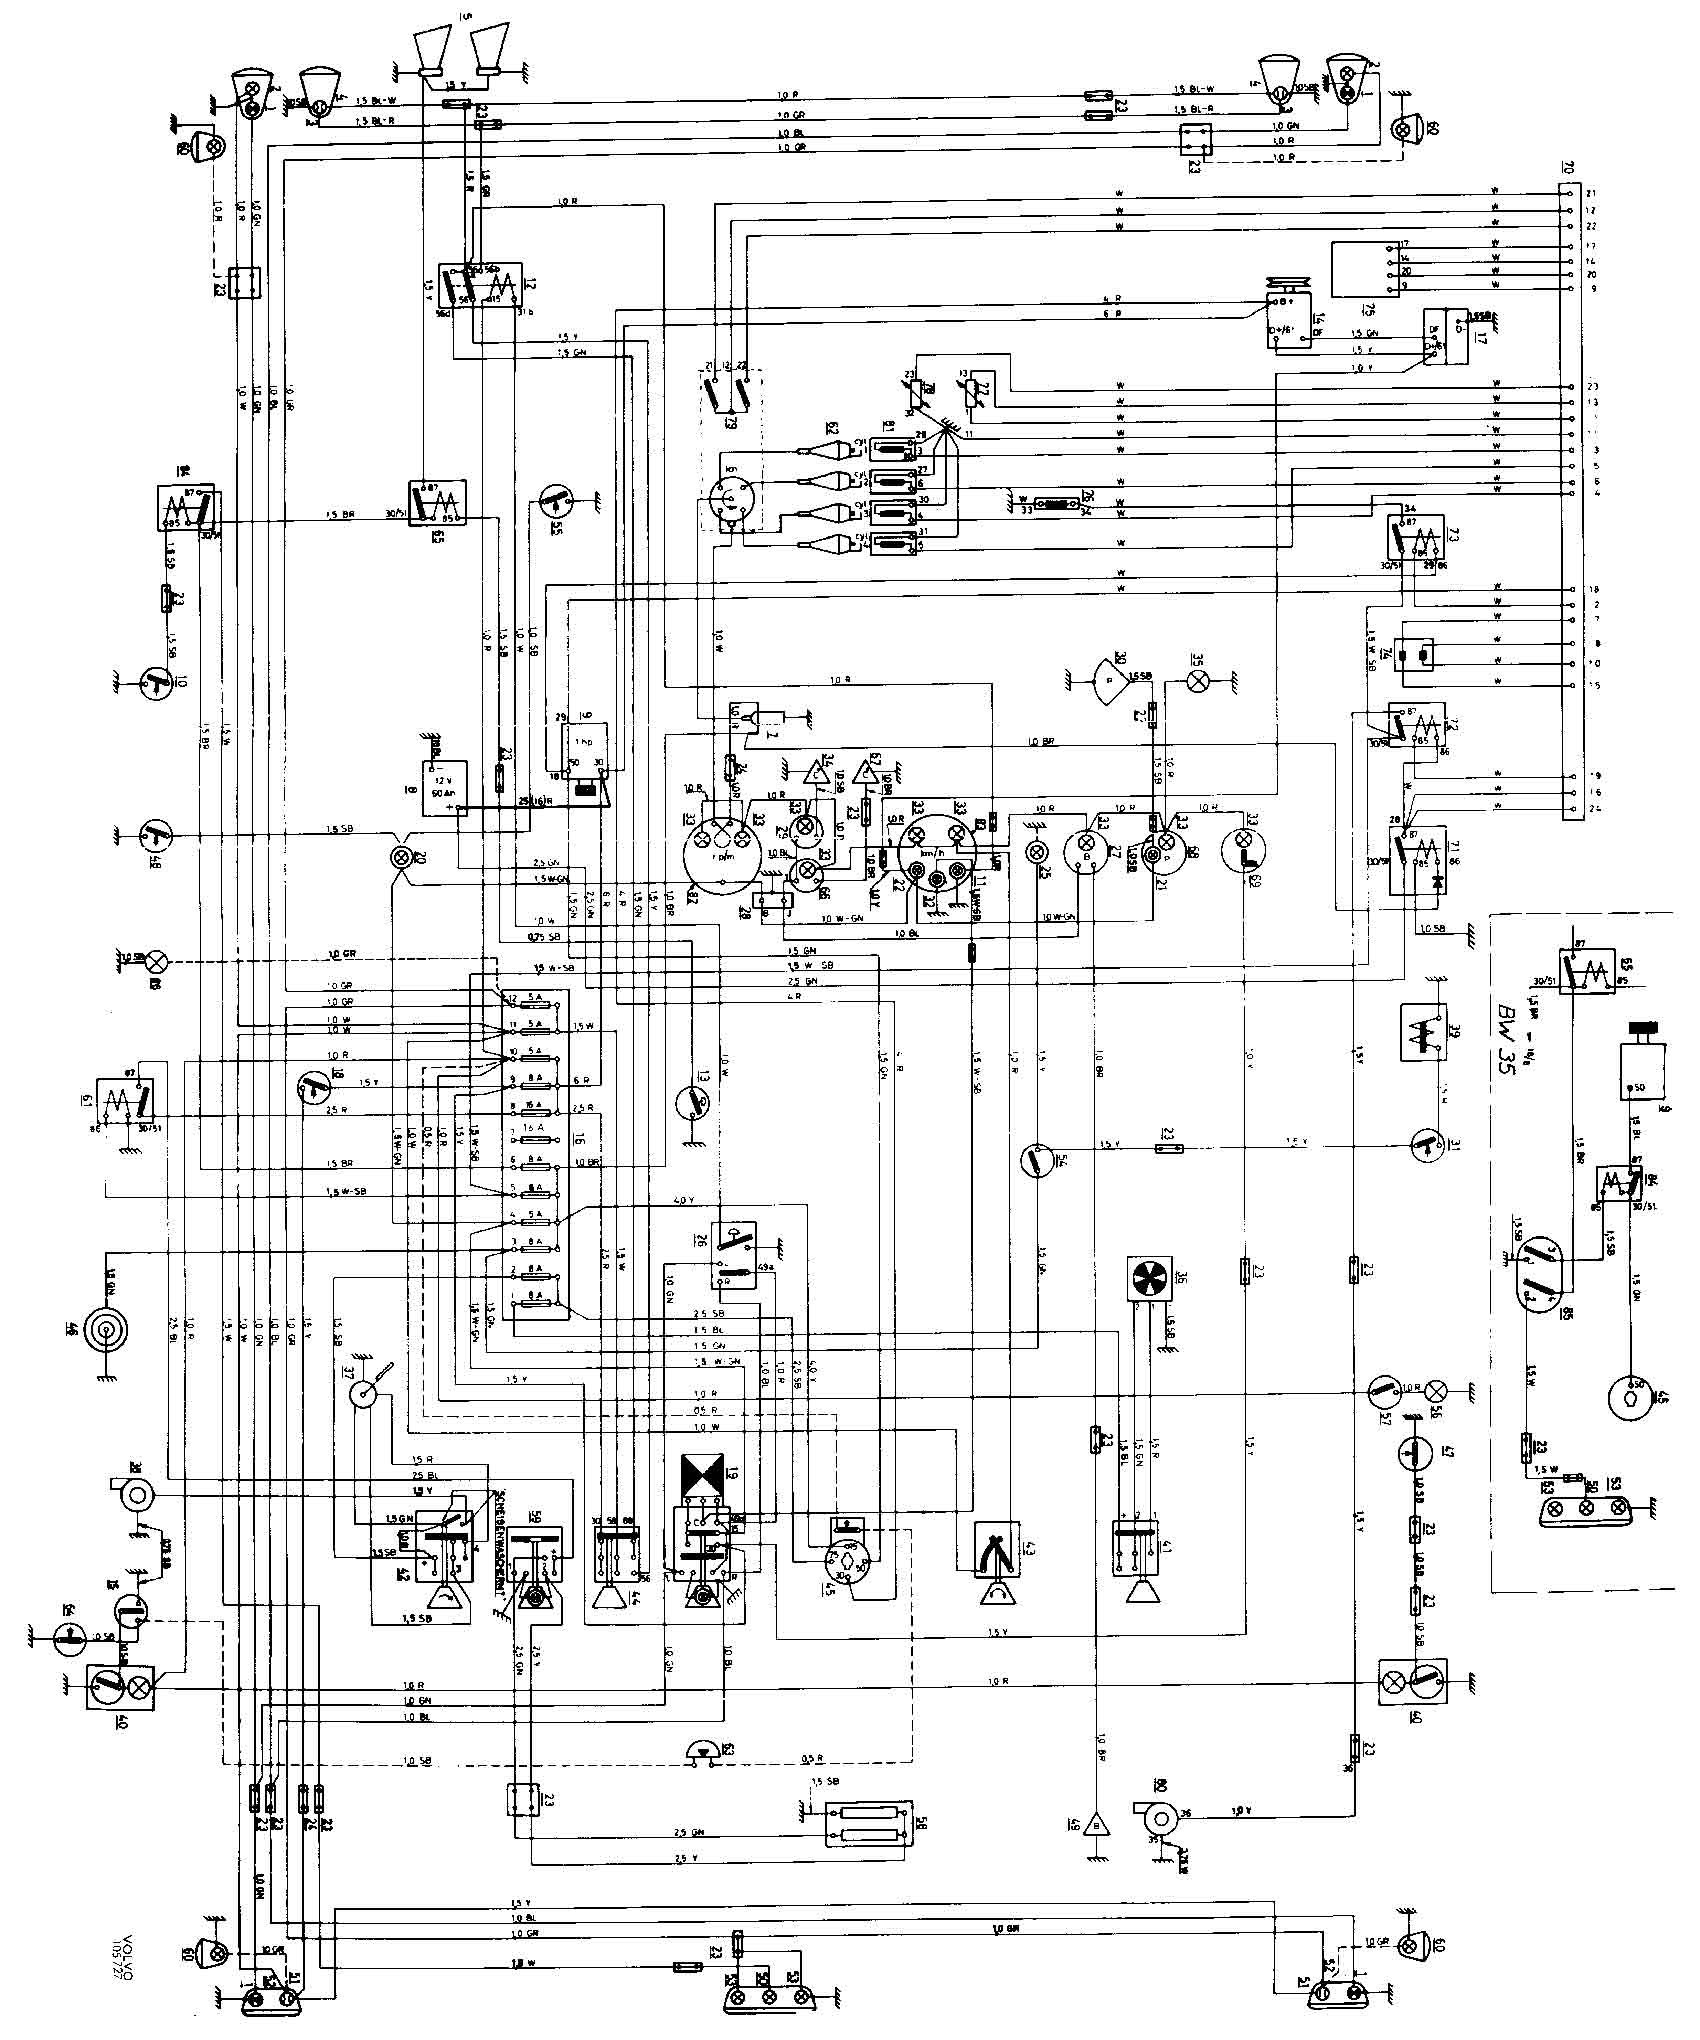 hight resolution of volvo 340 wiring diagram wiring diagrams value volvo 340 wiring diagram